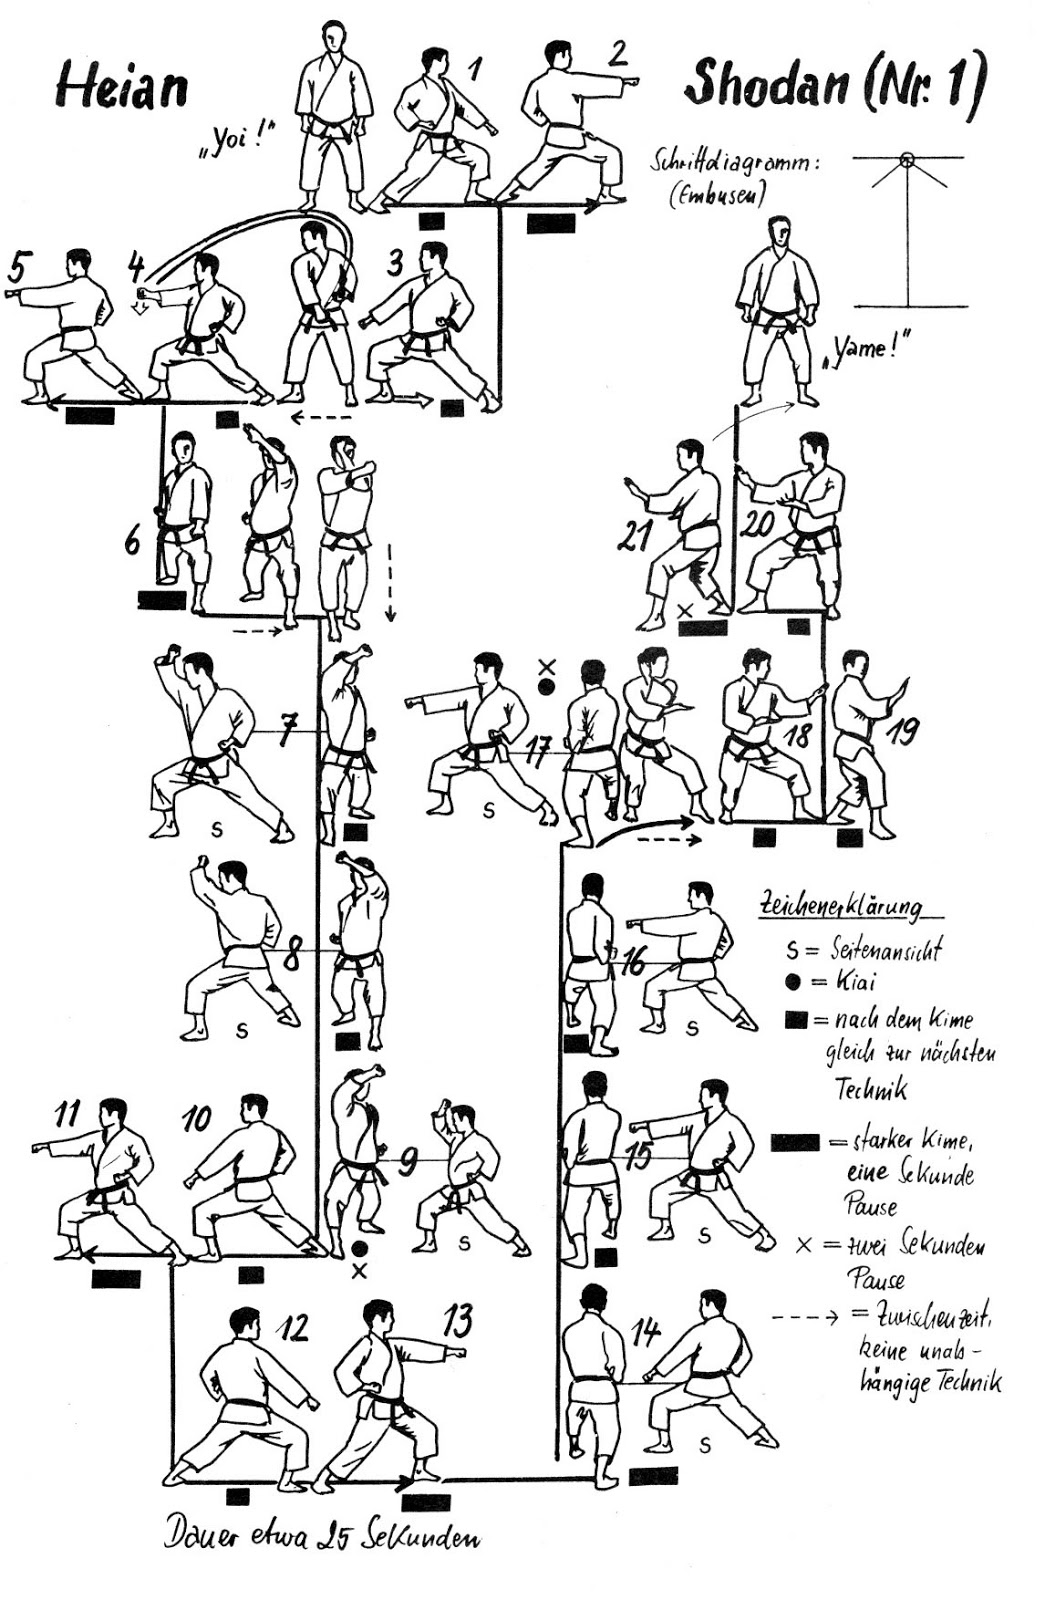 karate world: Kata Names and Movements with Pictures and Video